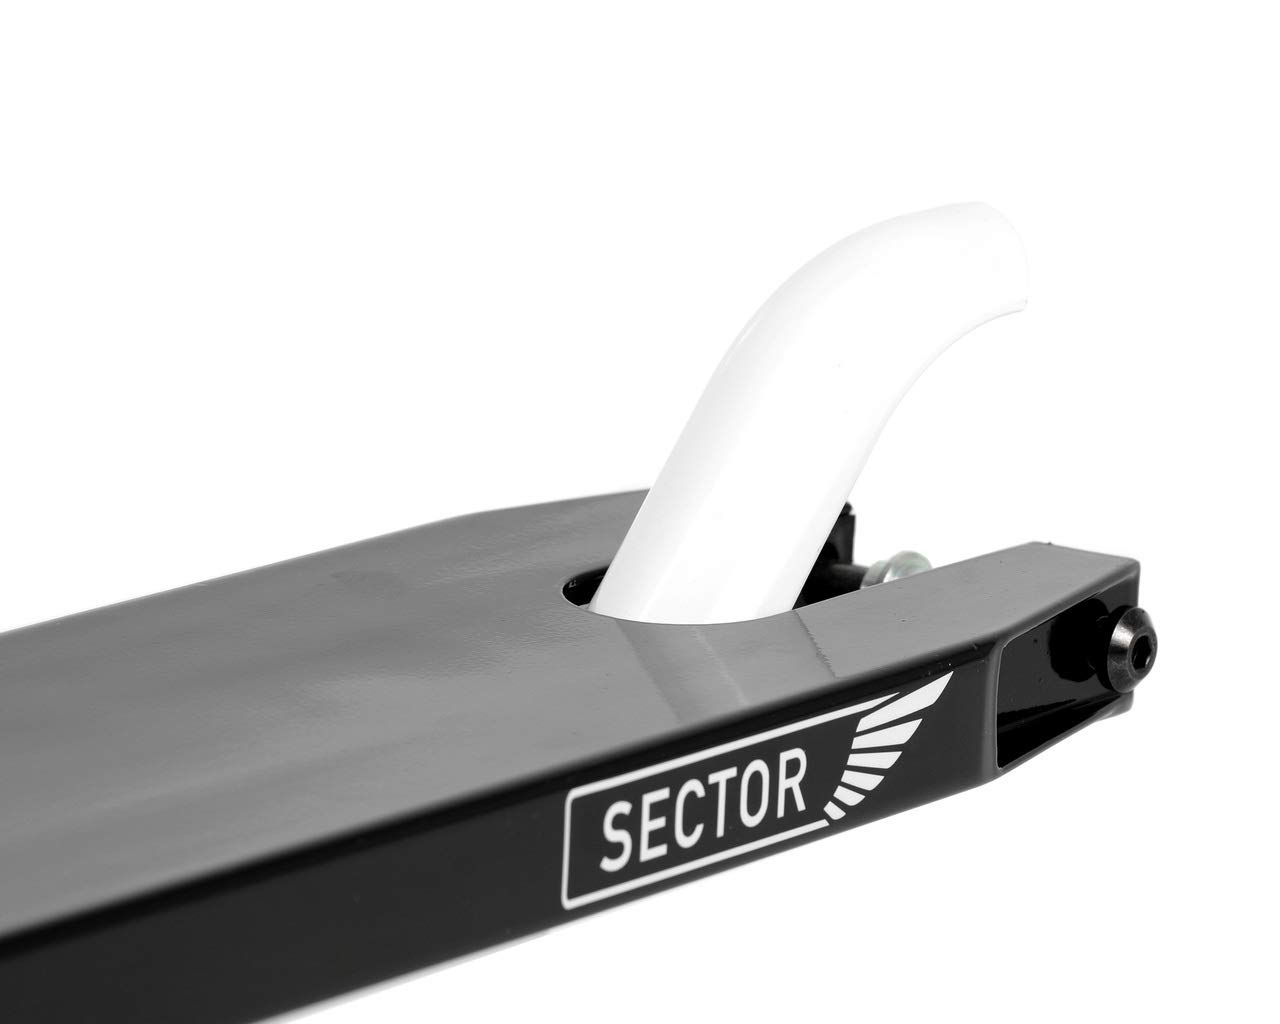 Longway Sector Scooter Deck 520mm - Negro